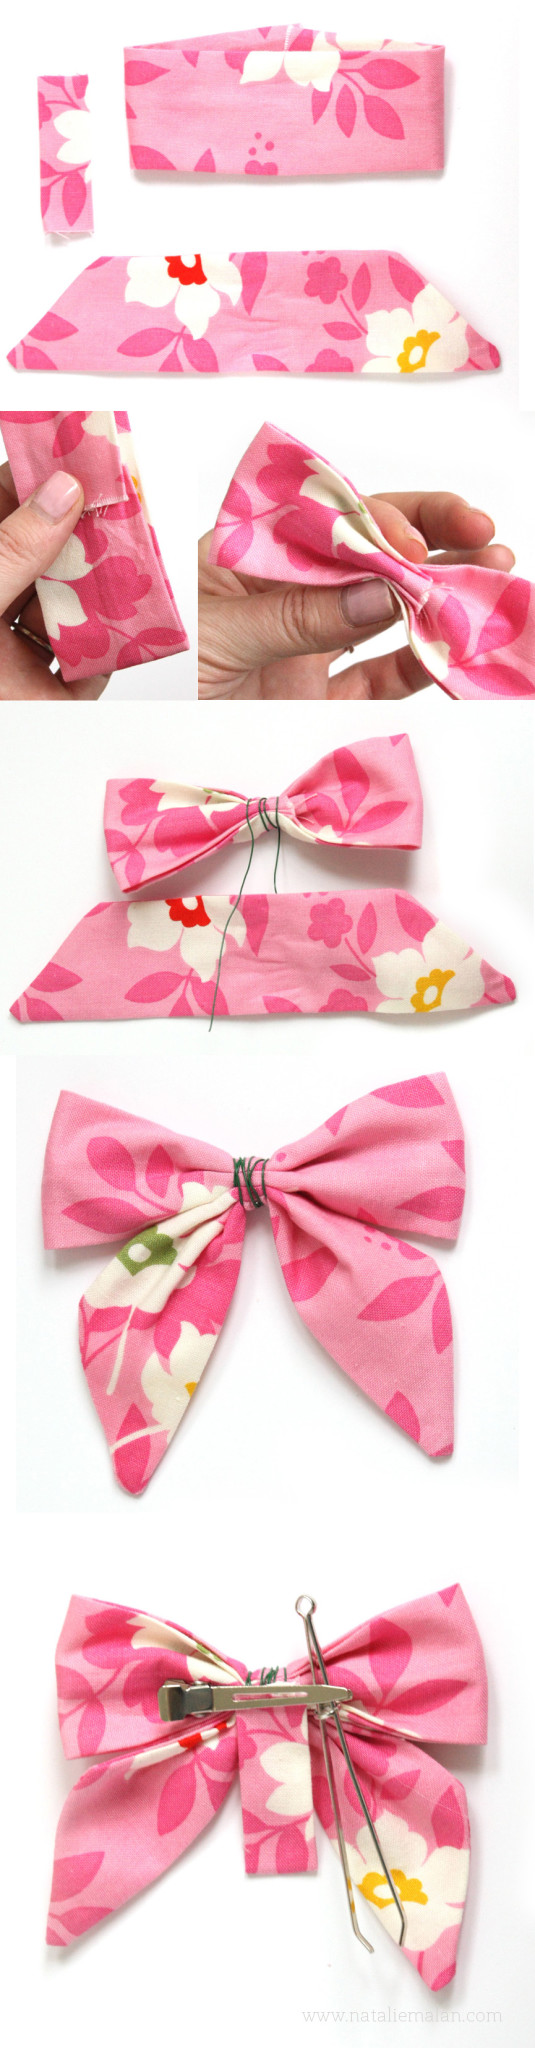 nataliemalan-free-diy-sailor-bow-pattern-girl-hair-bow-free-babe-tutorial-preview-long2-digifree